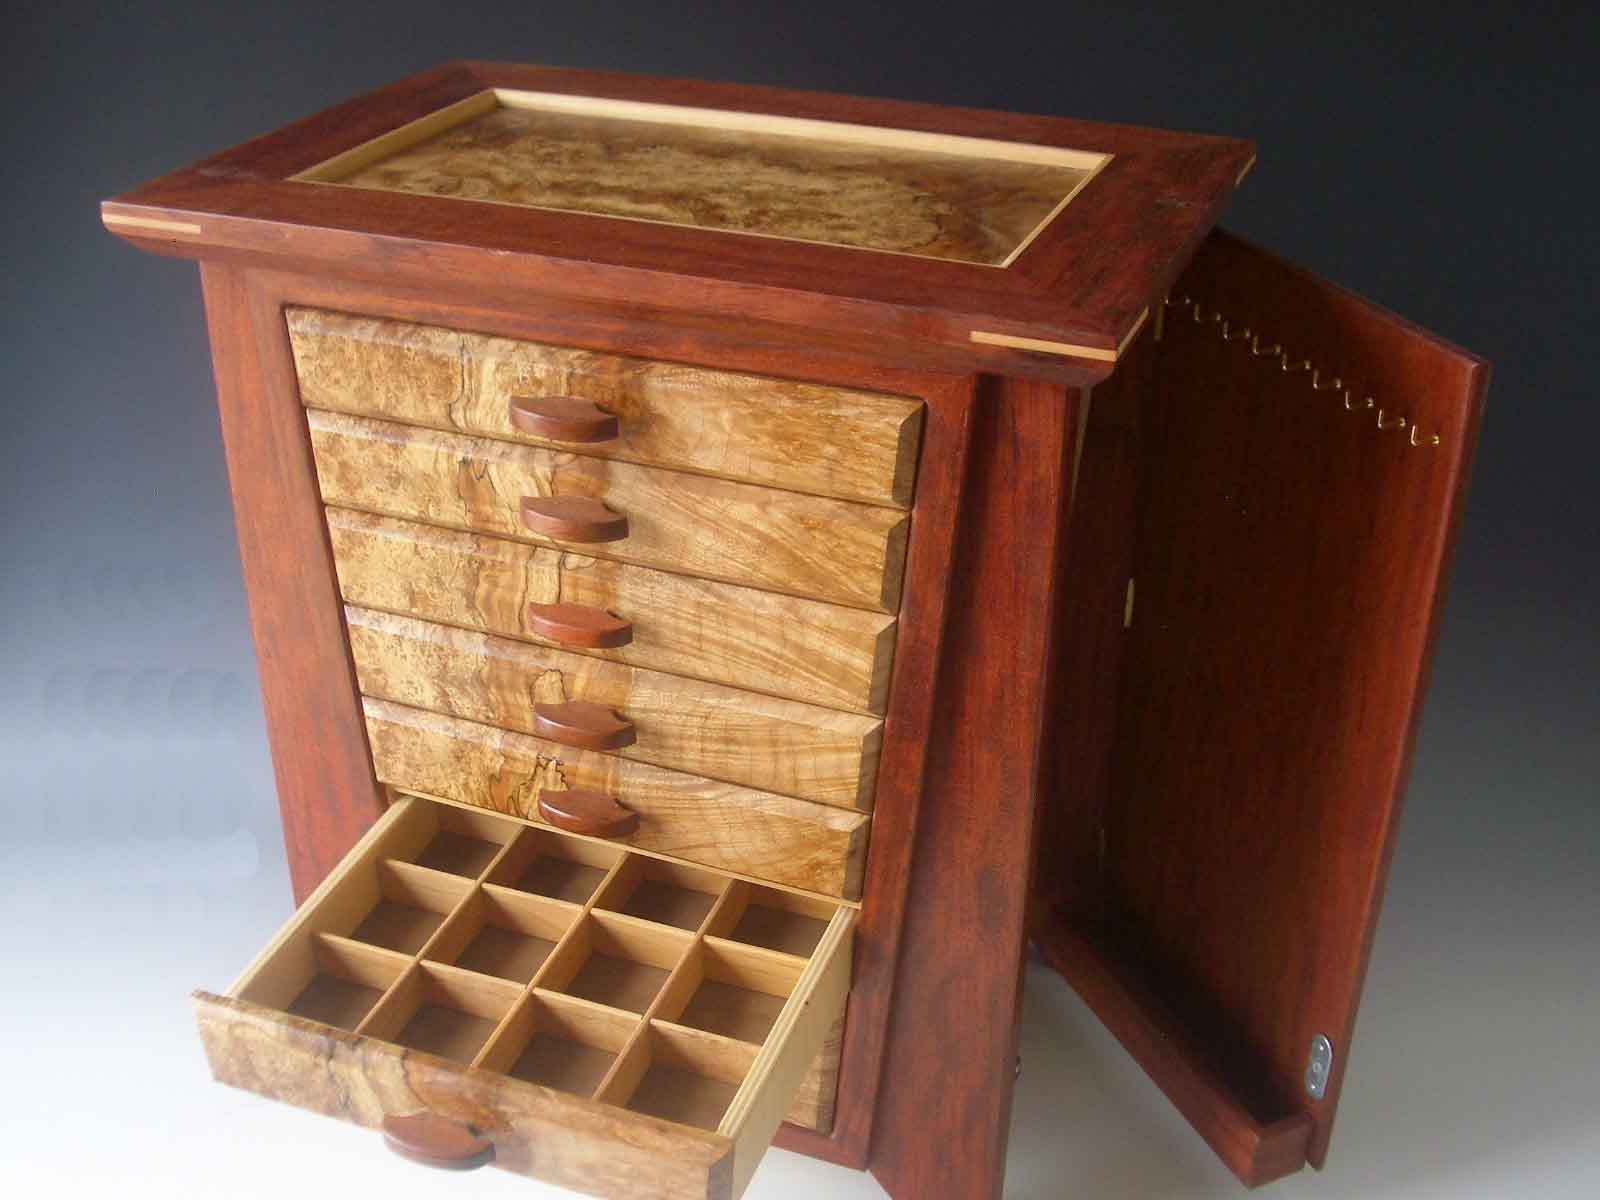 Wood Handmade Wooden Jewelry Boxes Plans PDF